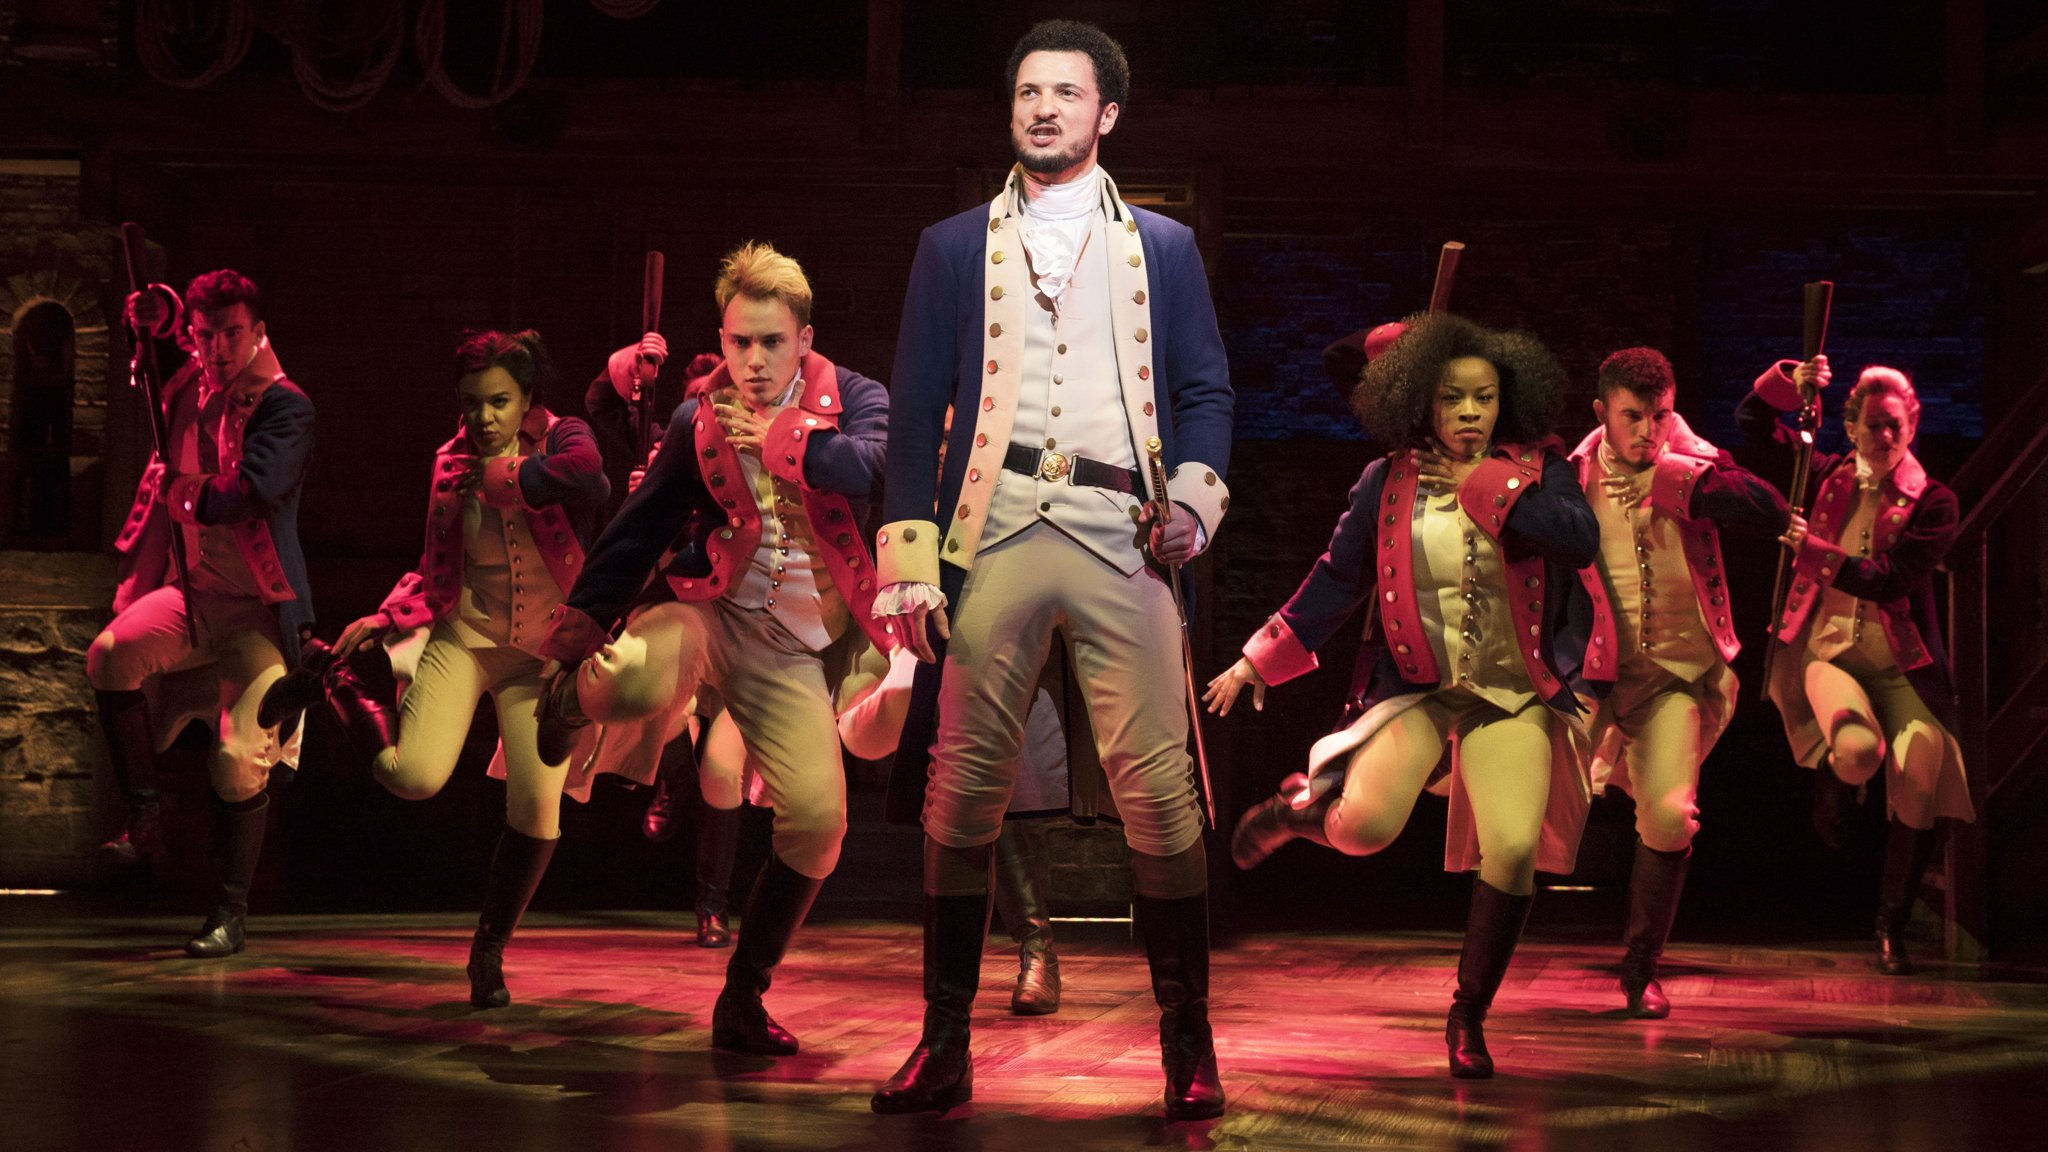 'Hamilton' likely to generate bumper returns for investors in London